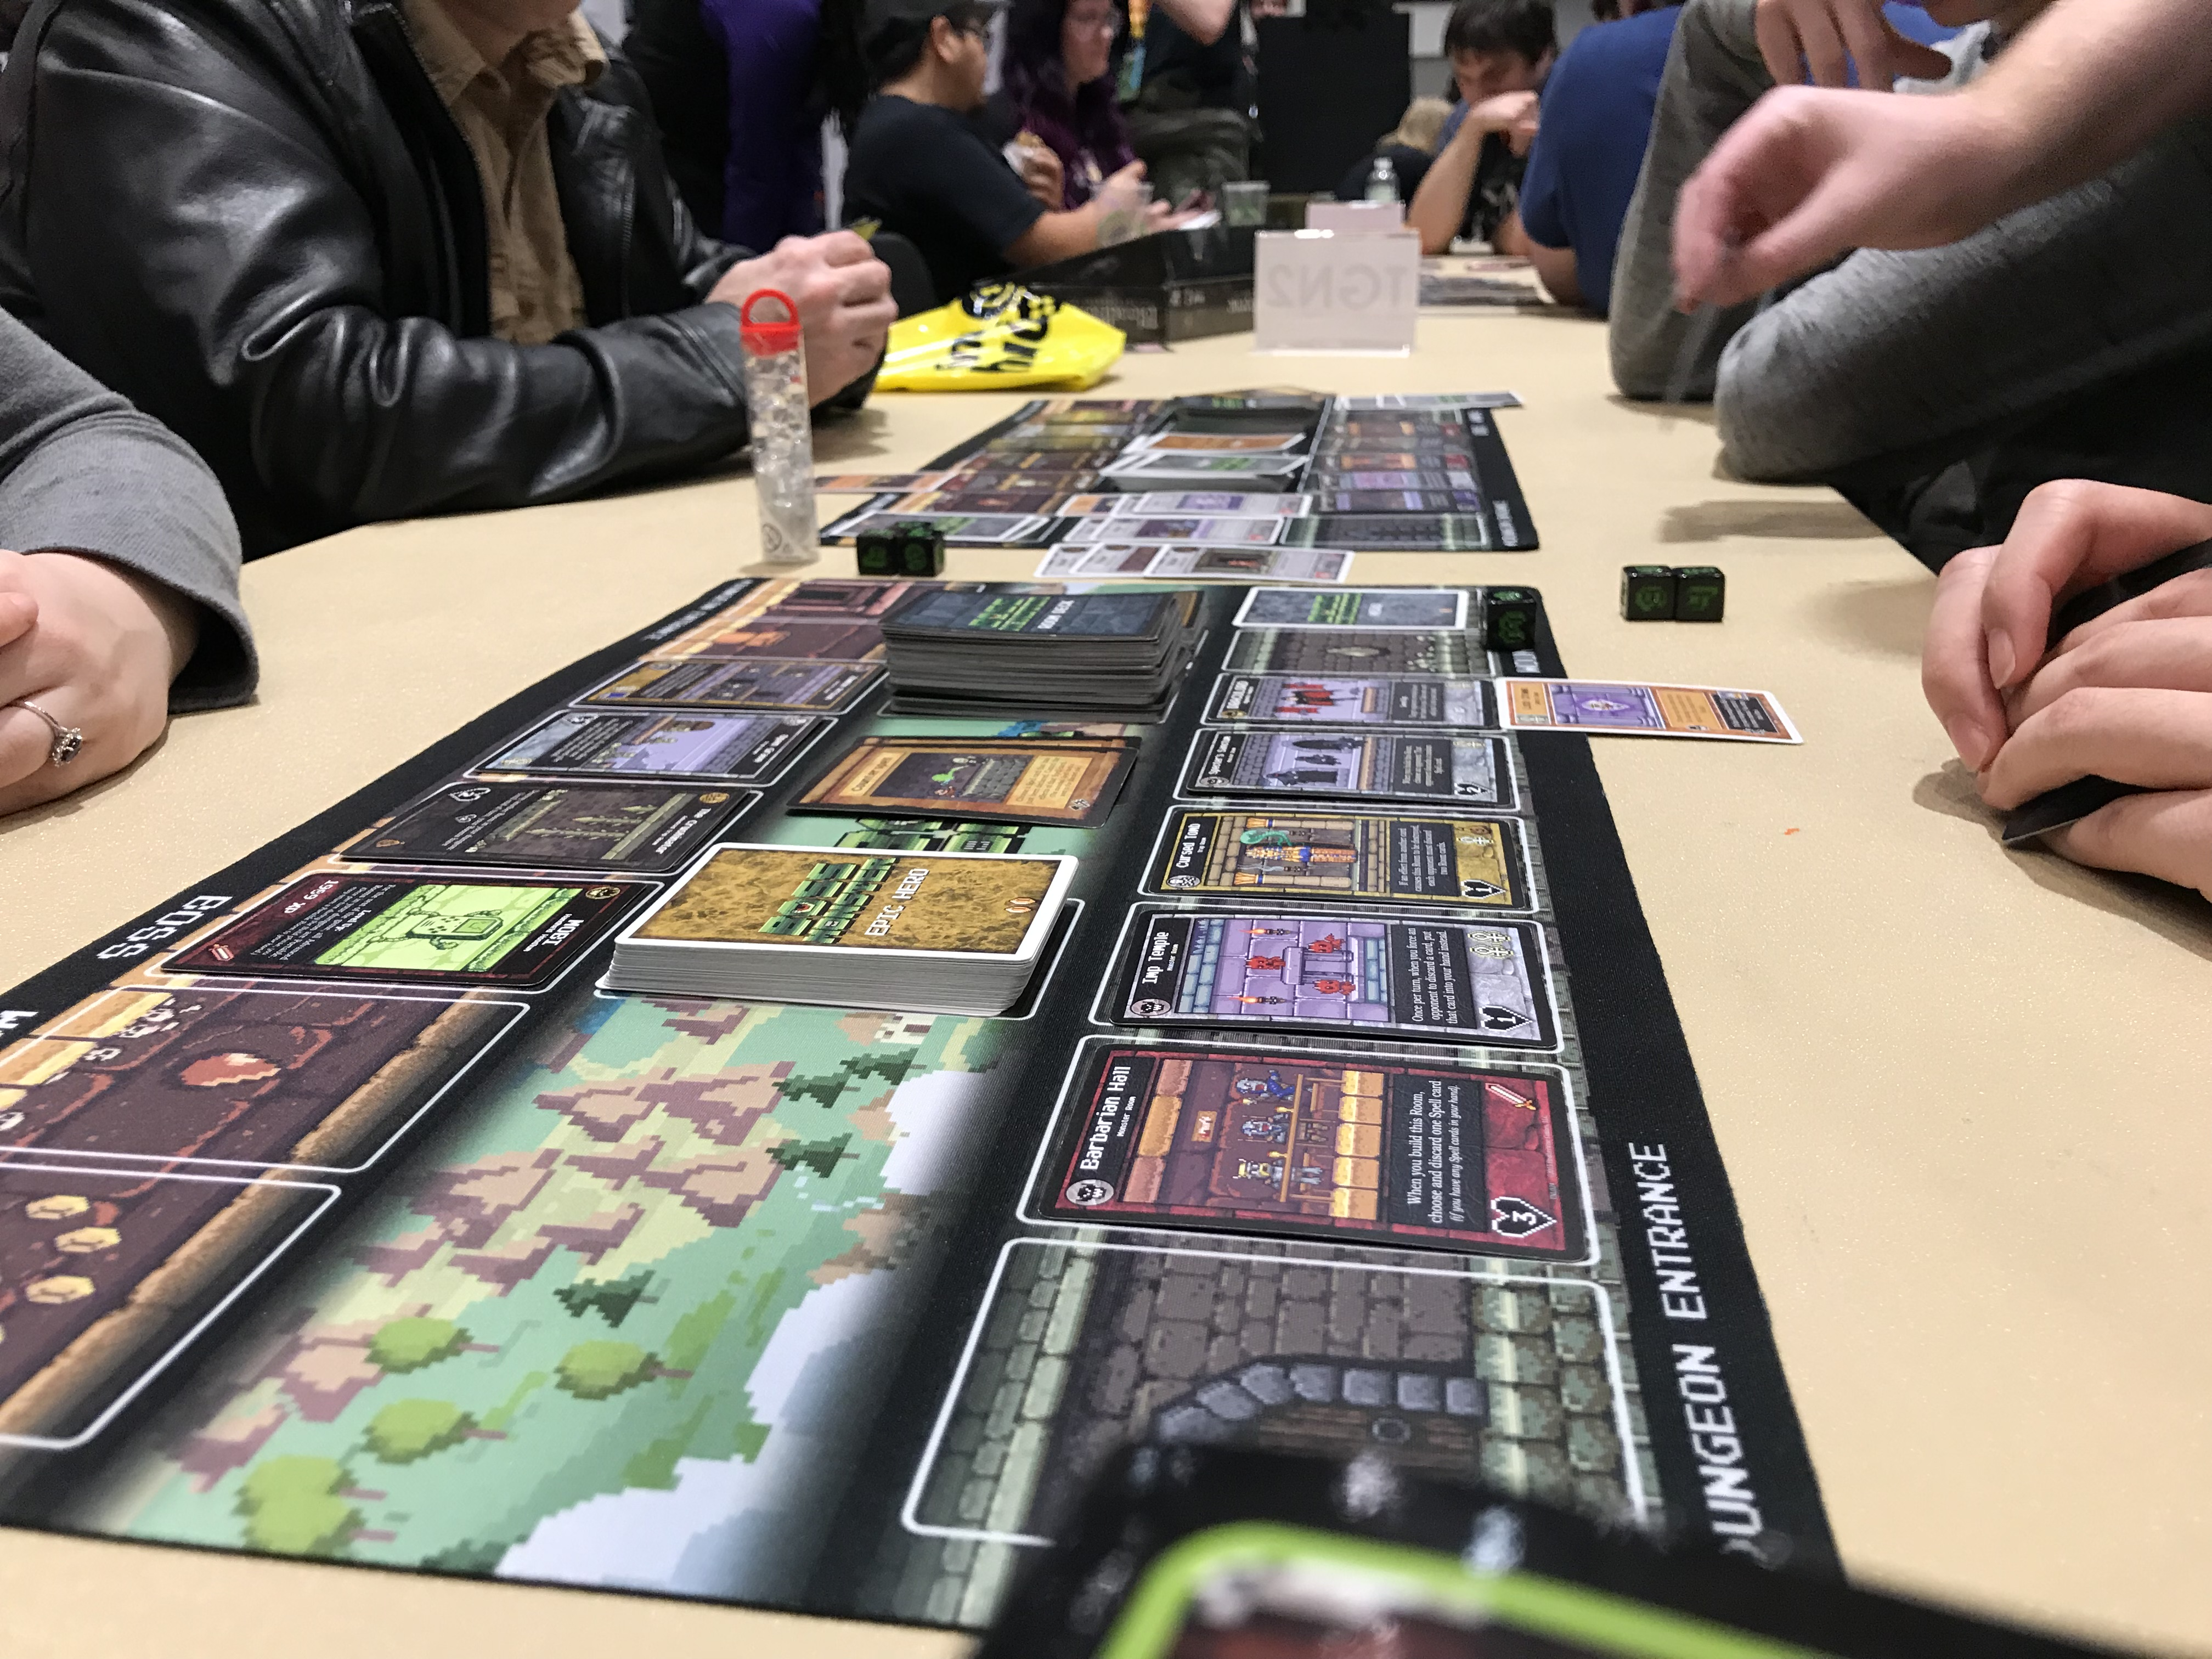 "<div class=""meta image-caption""><div class=""origin-logo origin-image wtvd""><span>WTVD</span></div><span class=""caption-text"">Playthrough Gaming Convention in Raleigh</span></div>"